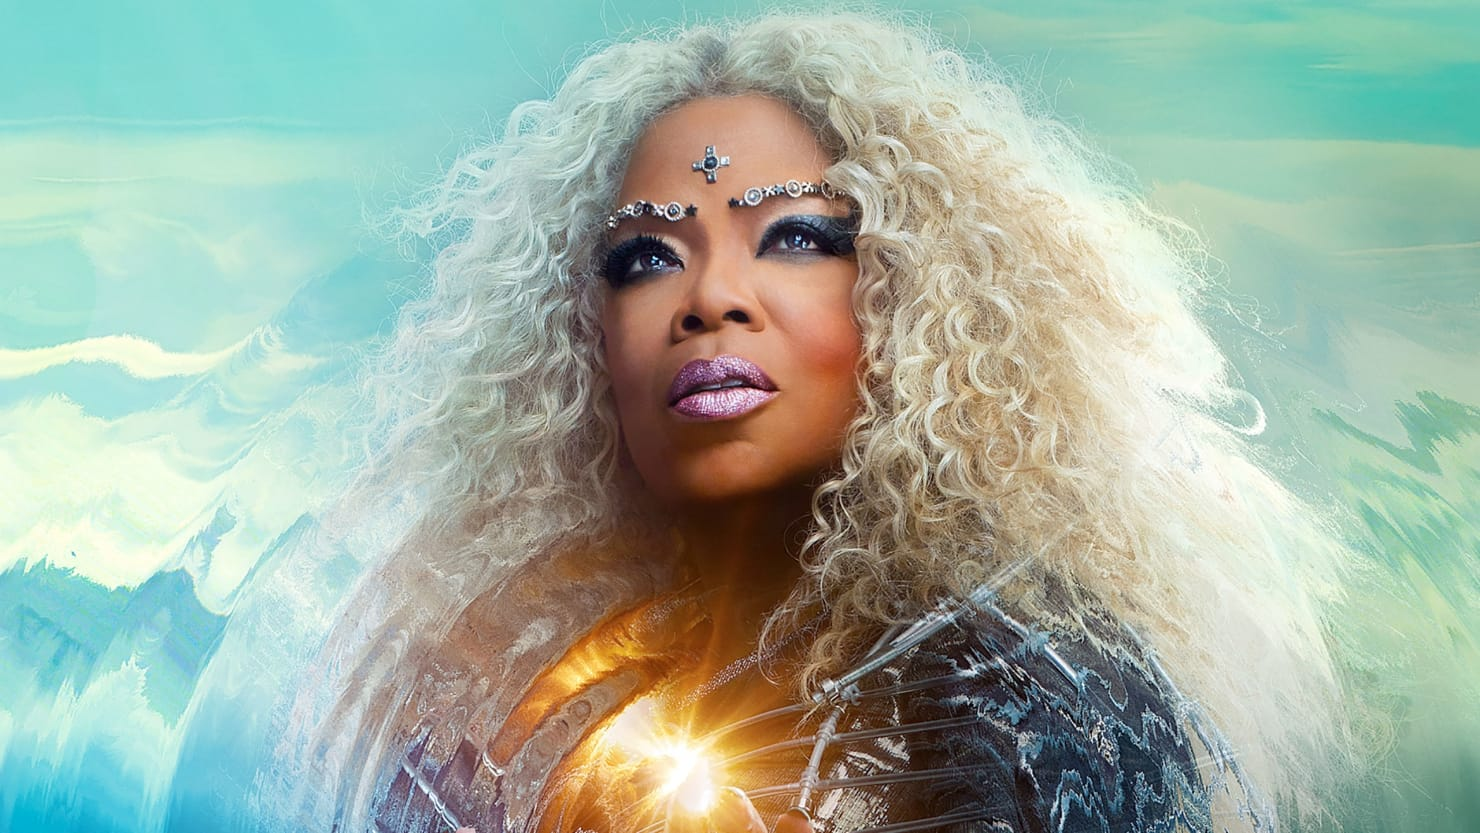 Oprahs ultraPC Wrinkle in Time stung with bad reviews as cringeworthy 100M Disney movie could bomb experts say